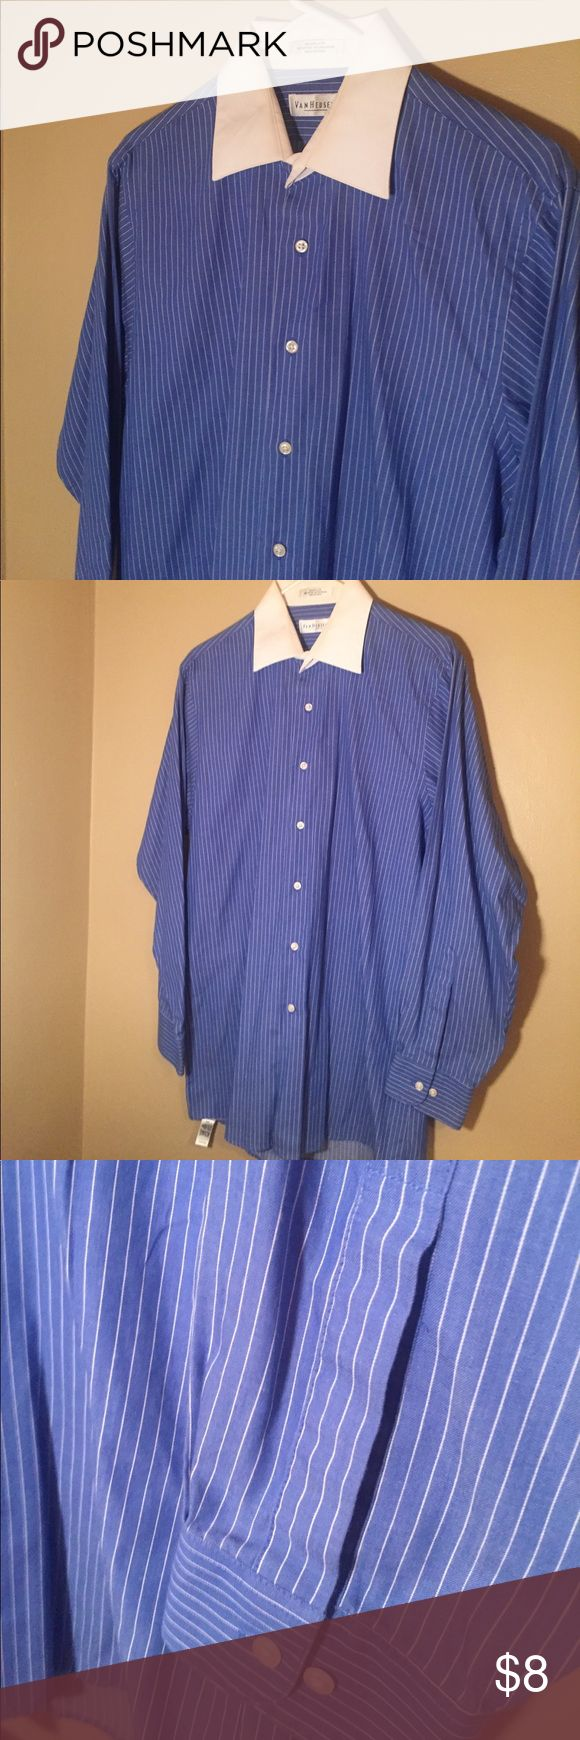 Men's Blue shirt white collar button up Excellent used condition. Selling because it no longer fits. Bright blue shirt with white pinstripes and white collar. Size says 15-15.5 Van Heusen Shirts Casual Button Down Shirts